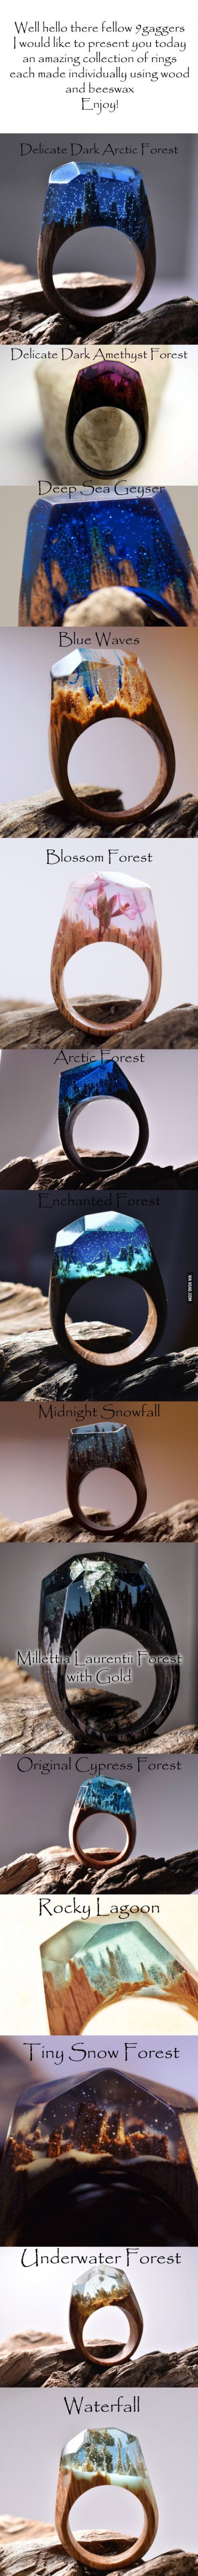 These Wooden Rings Hold Tiny Worlds Within Them - Inside each of these wooden rings is a beautiful hidden world